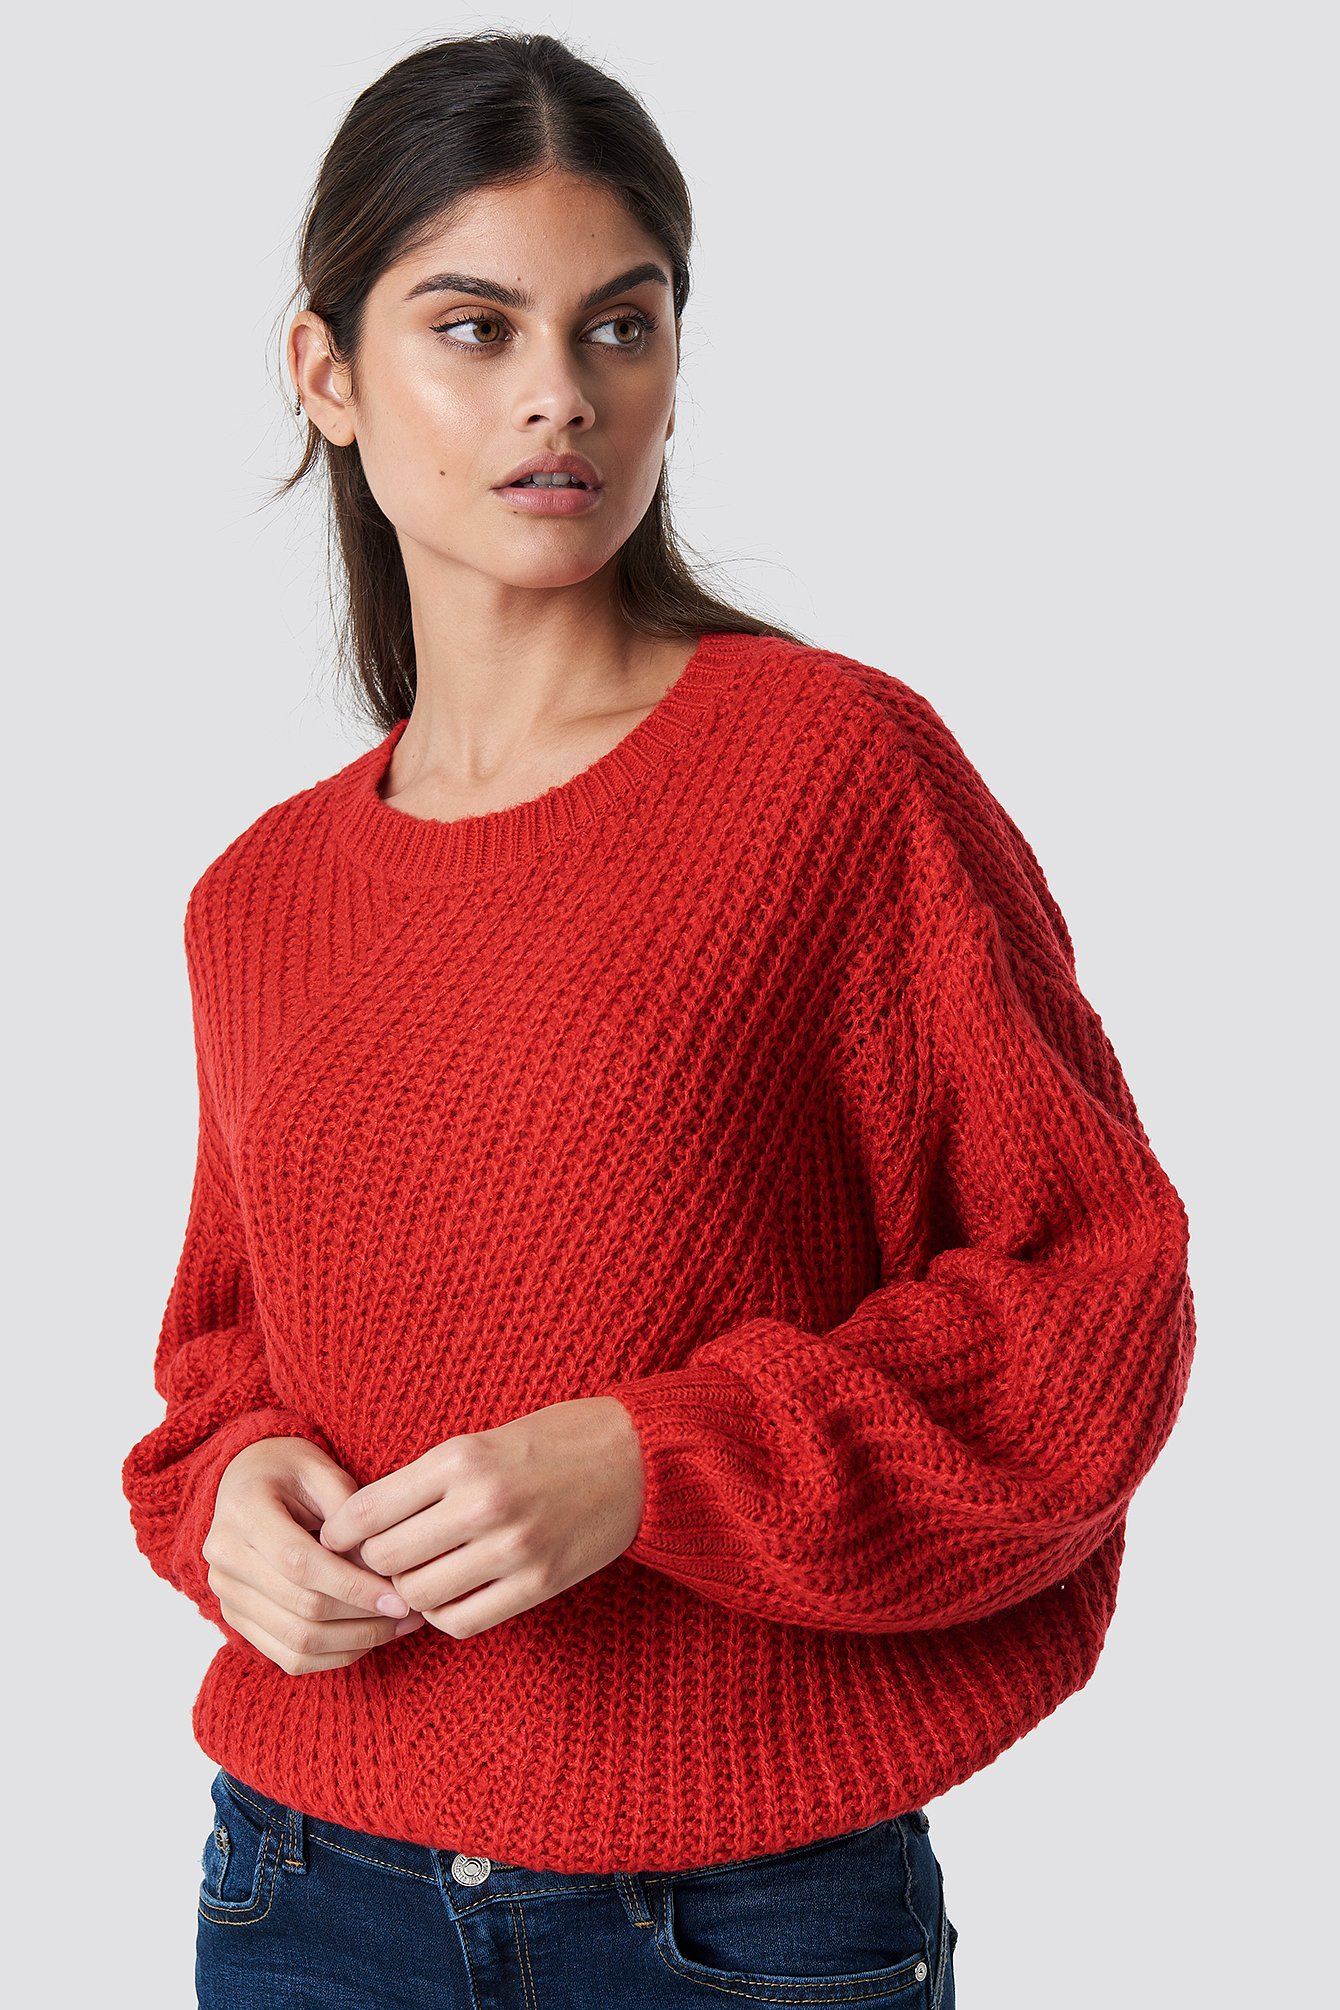 TOP SECRET Wide Sleeve Knitted Sweater - Red